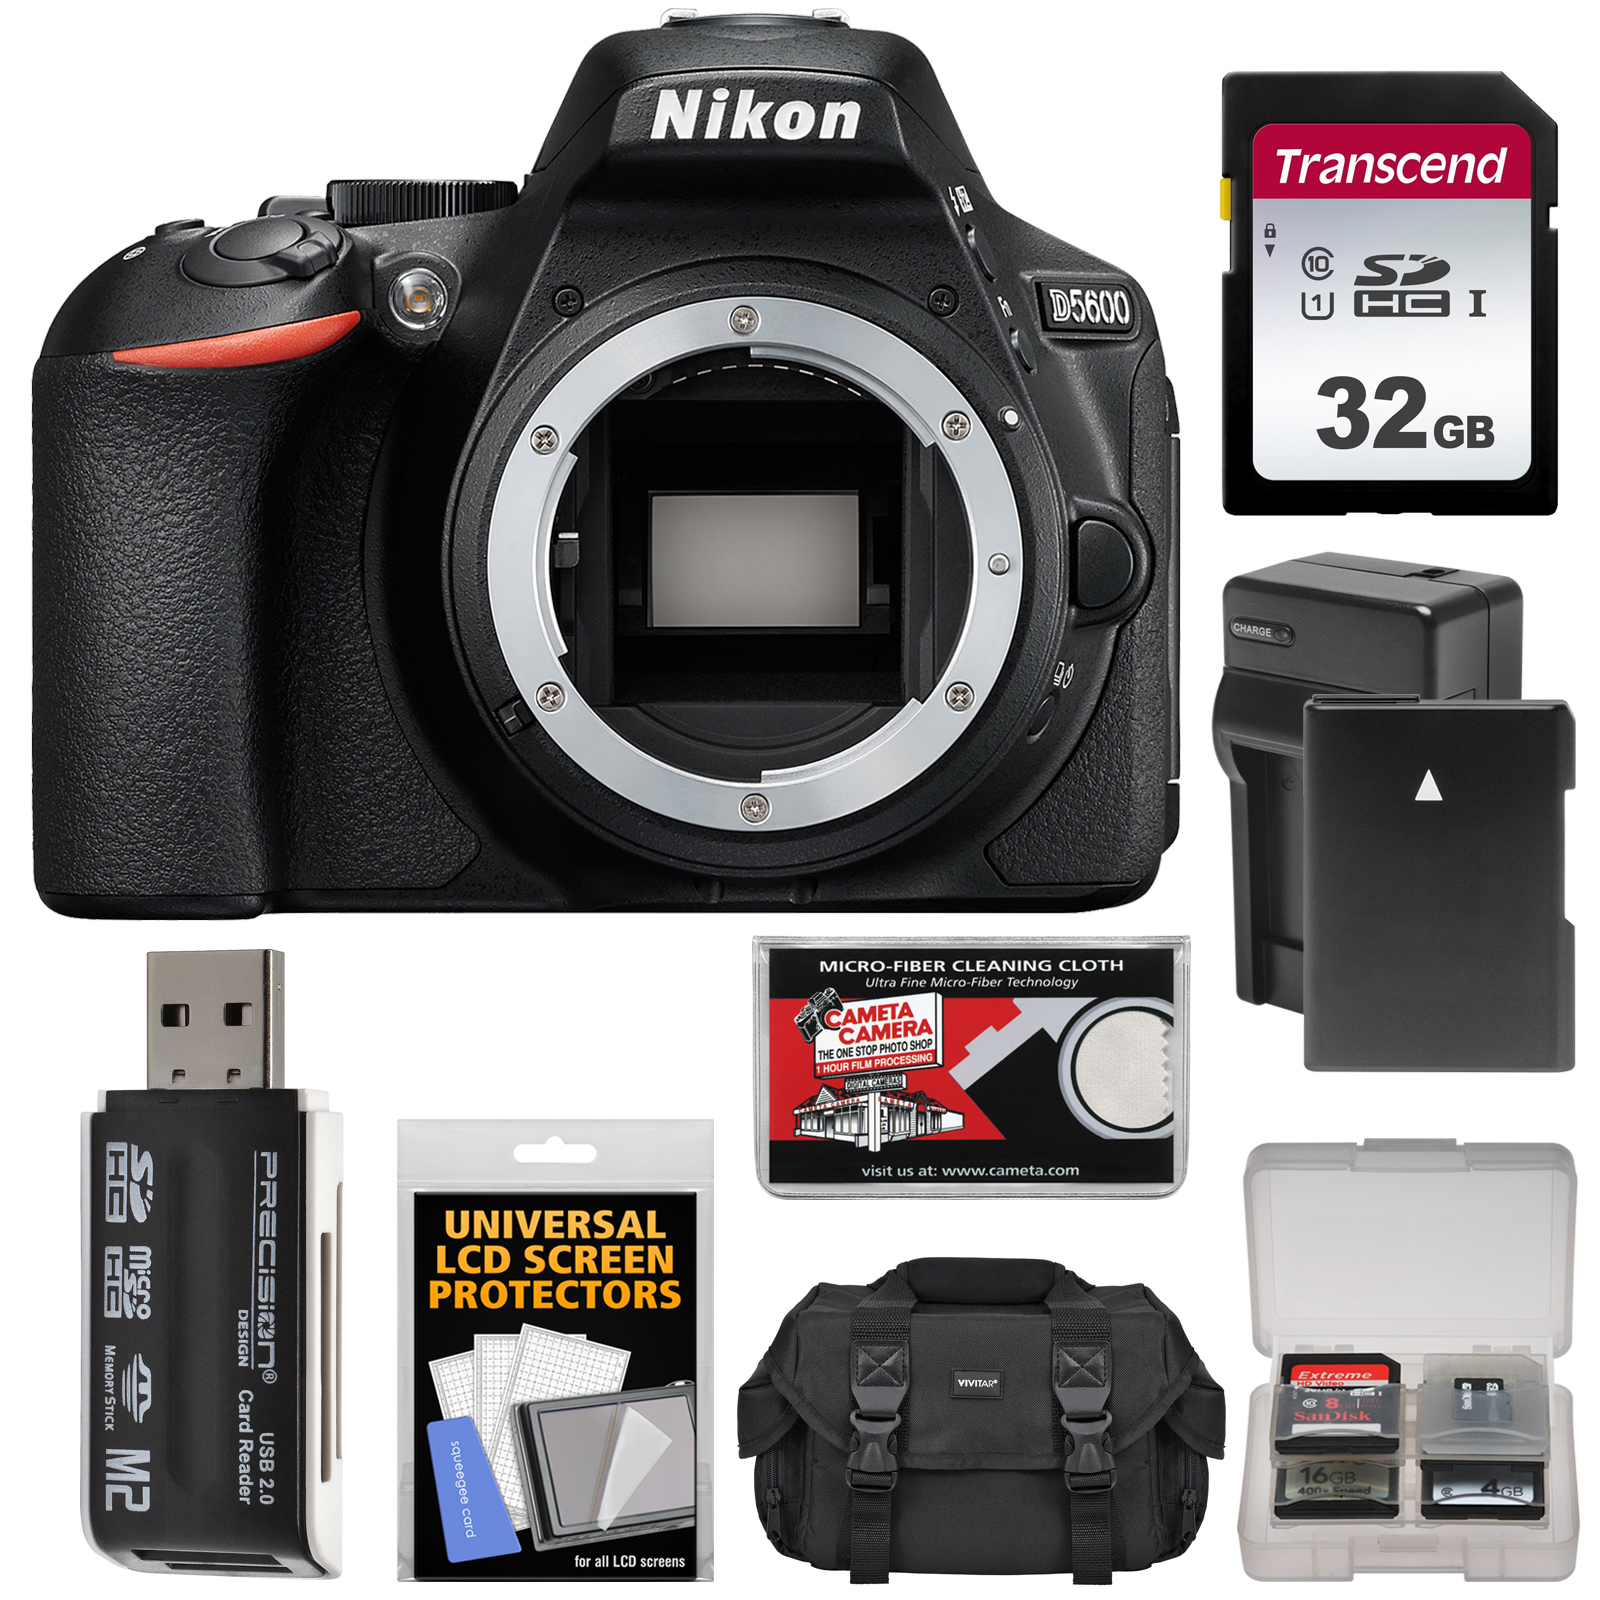 Nikon D5600 Digital SLR Camera Body - Refurbished with 32GB Card + Battery  + Charger + Case + Reader + Kit